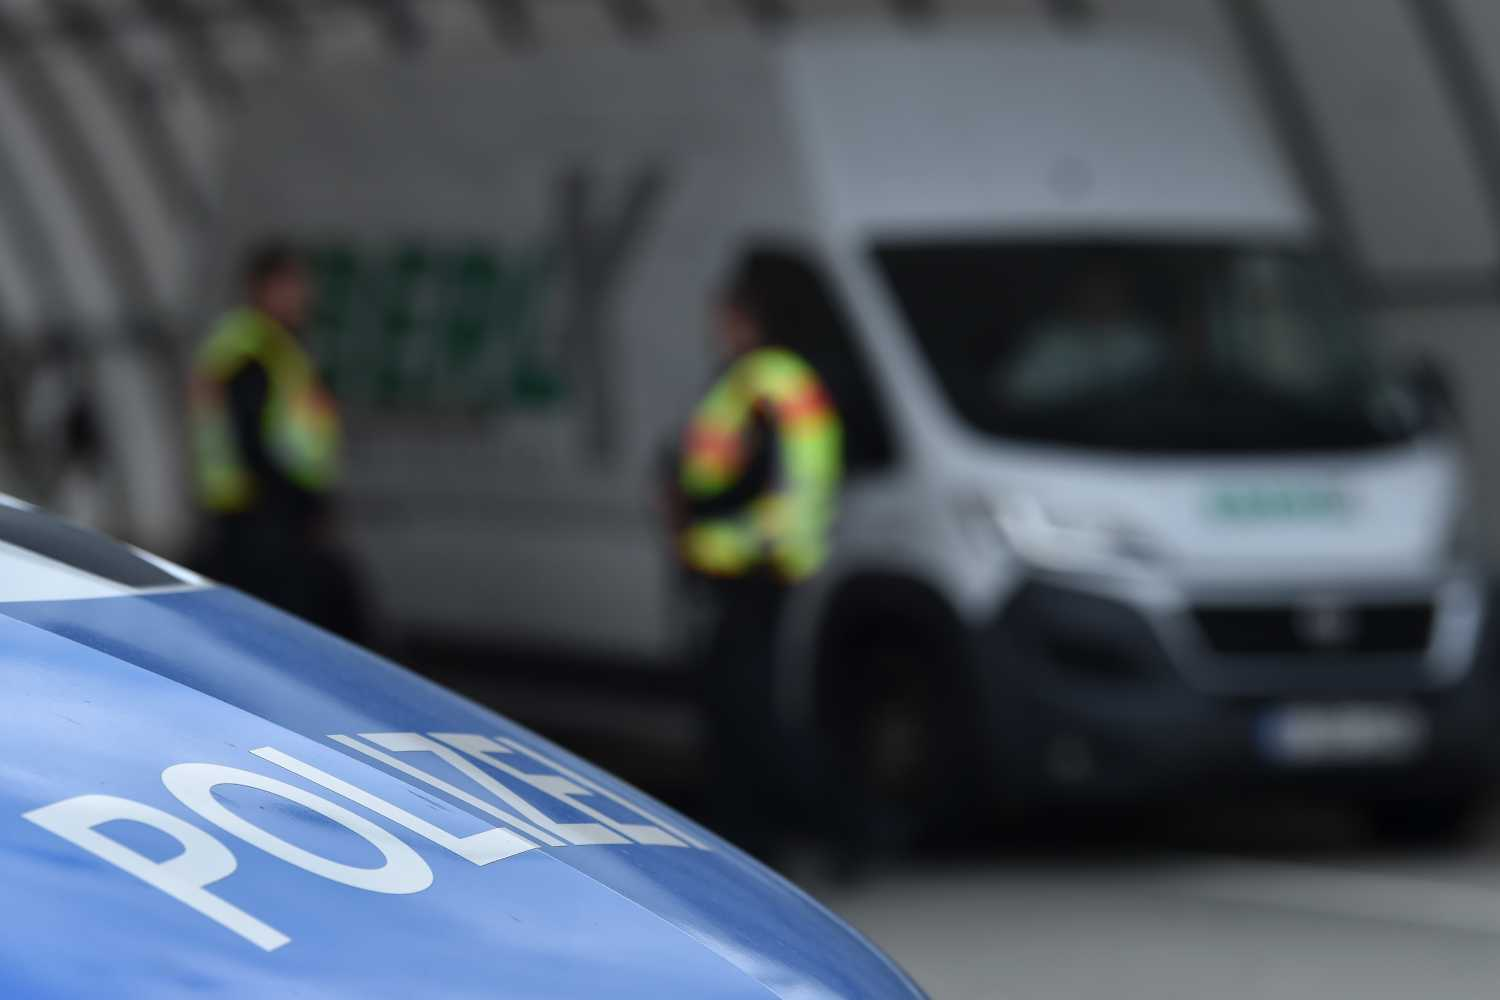 Vienna funeral services 'forgot' body for two months